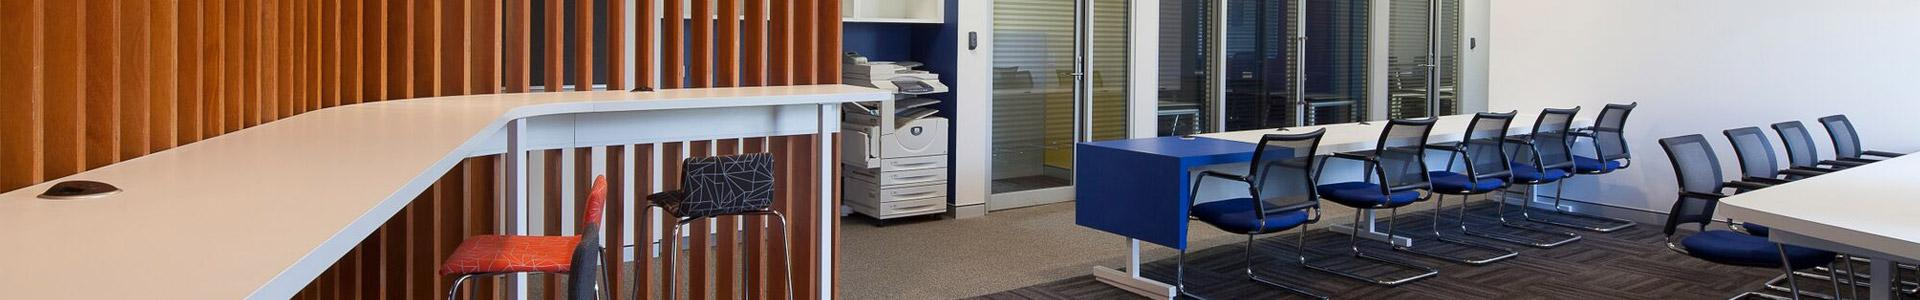 Corporate Interior Projects Key Projects